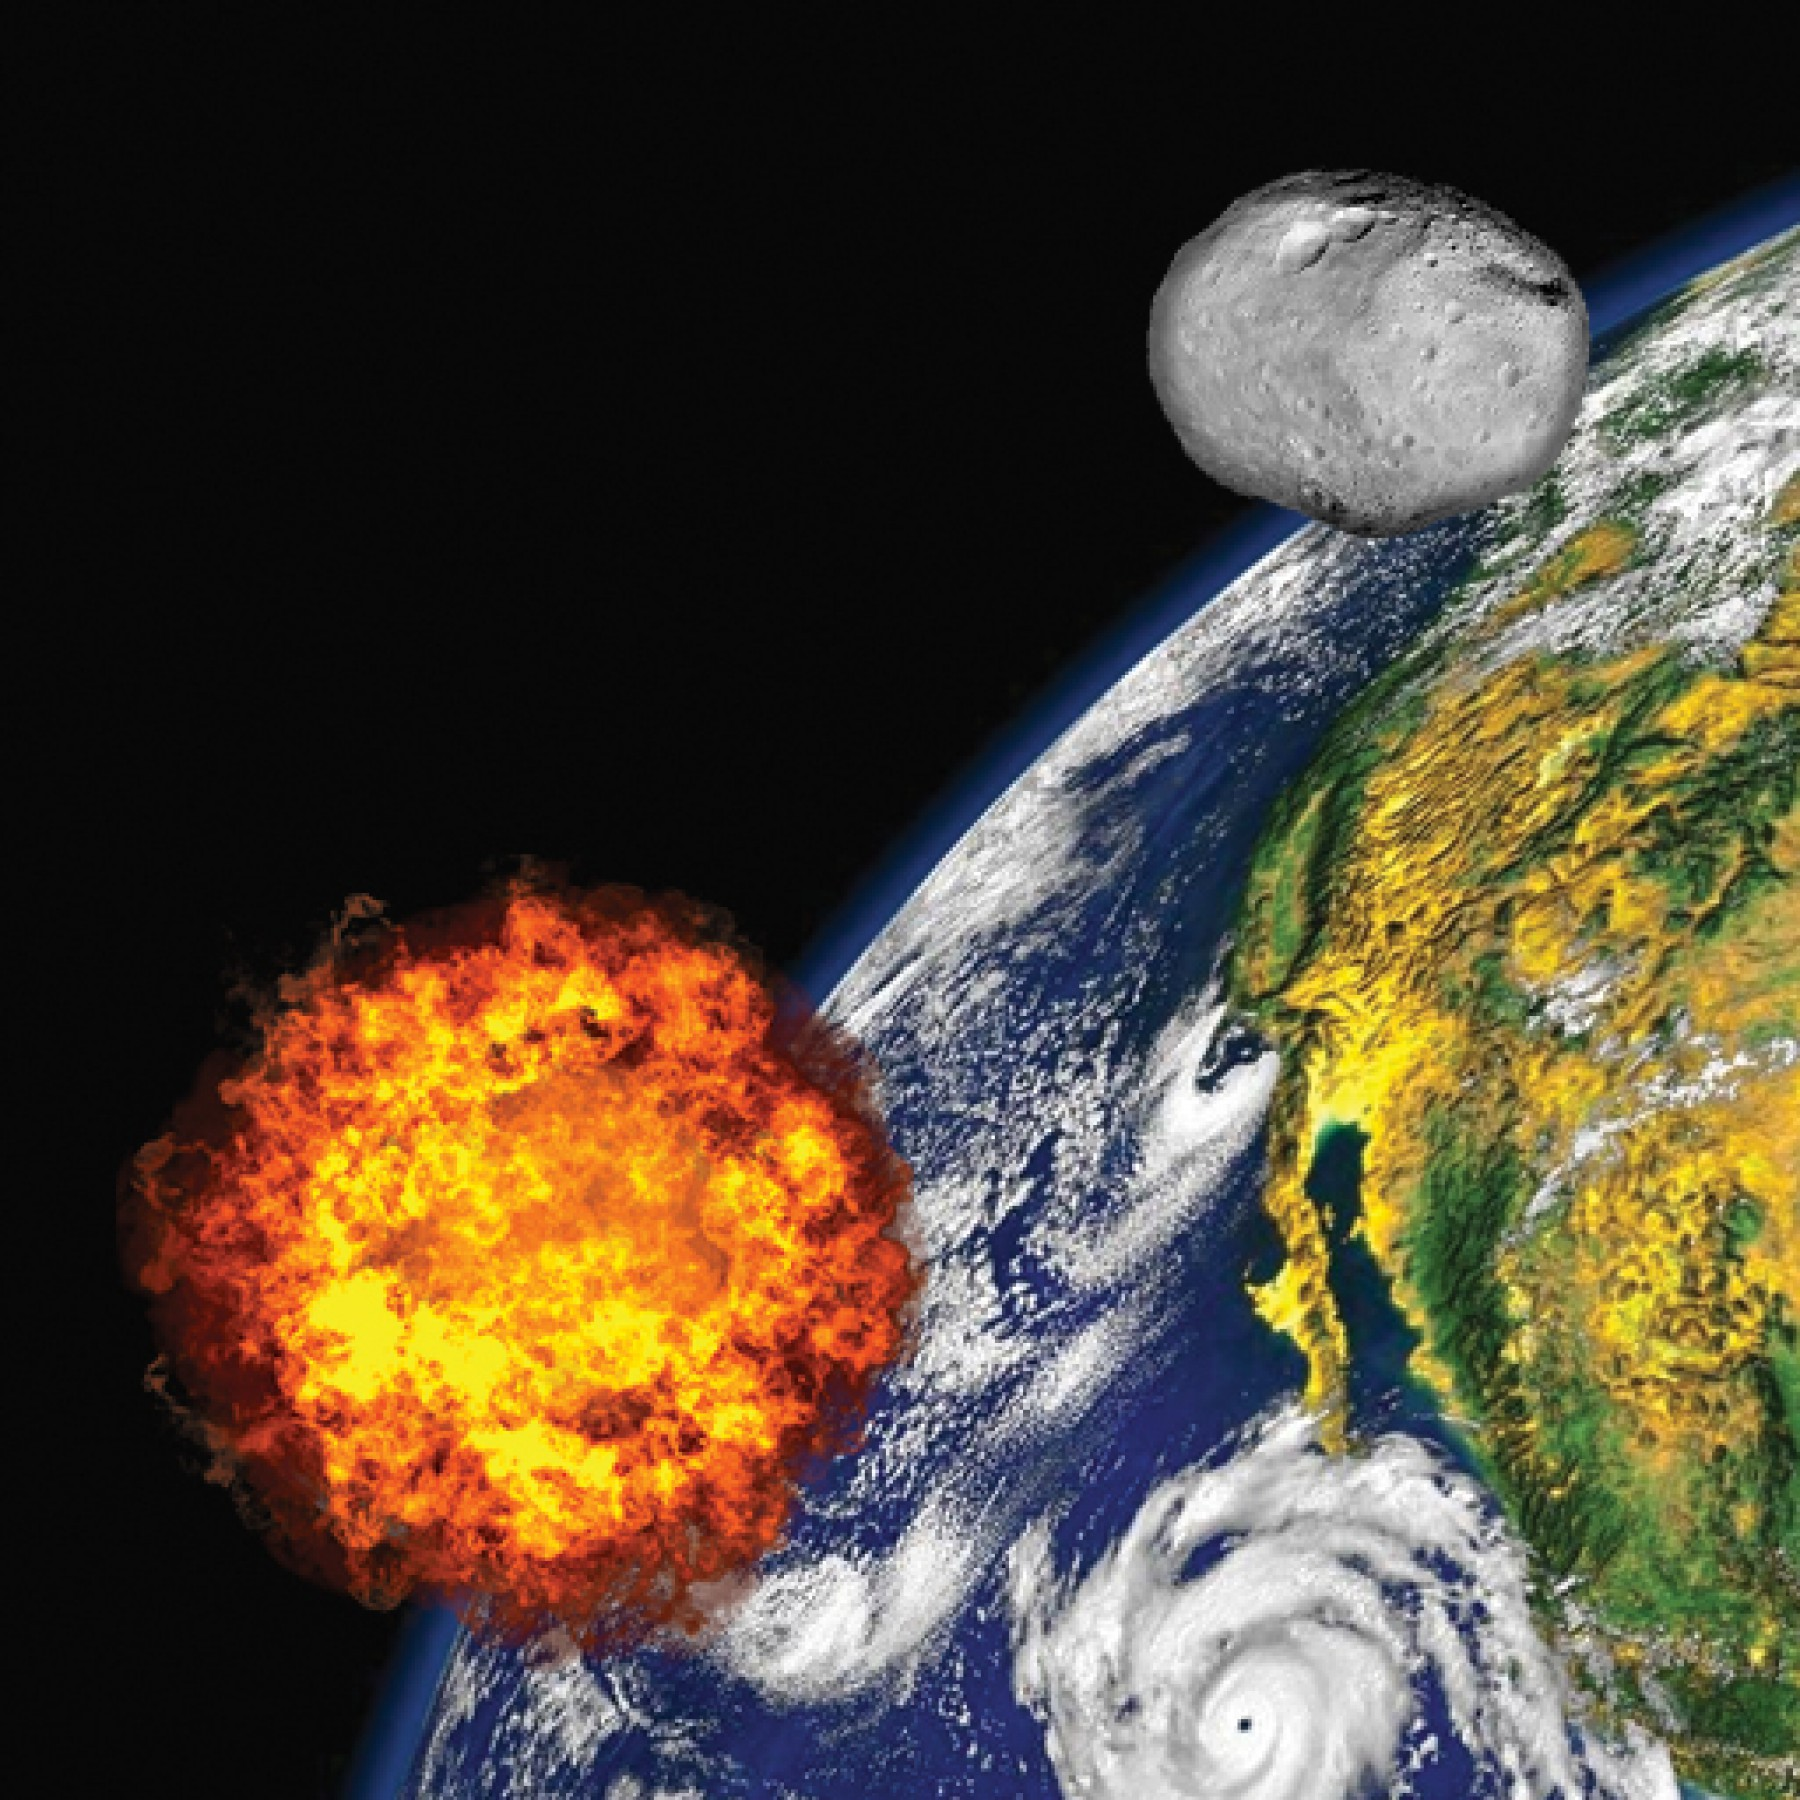 asteroid-storm-travel-active-kids-adults-science-tech-education-main-location1